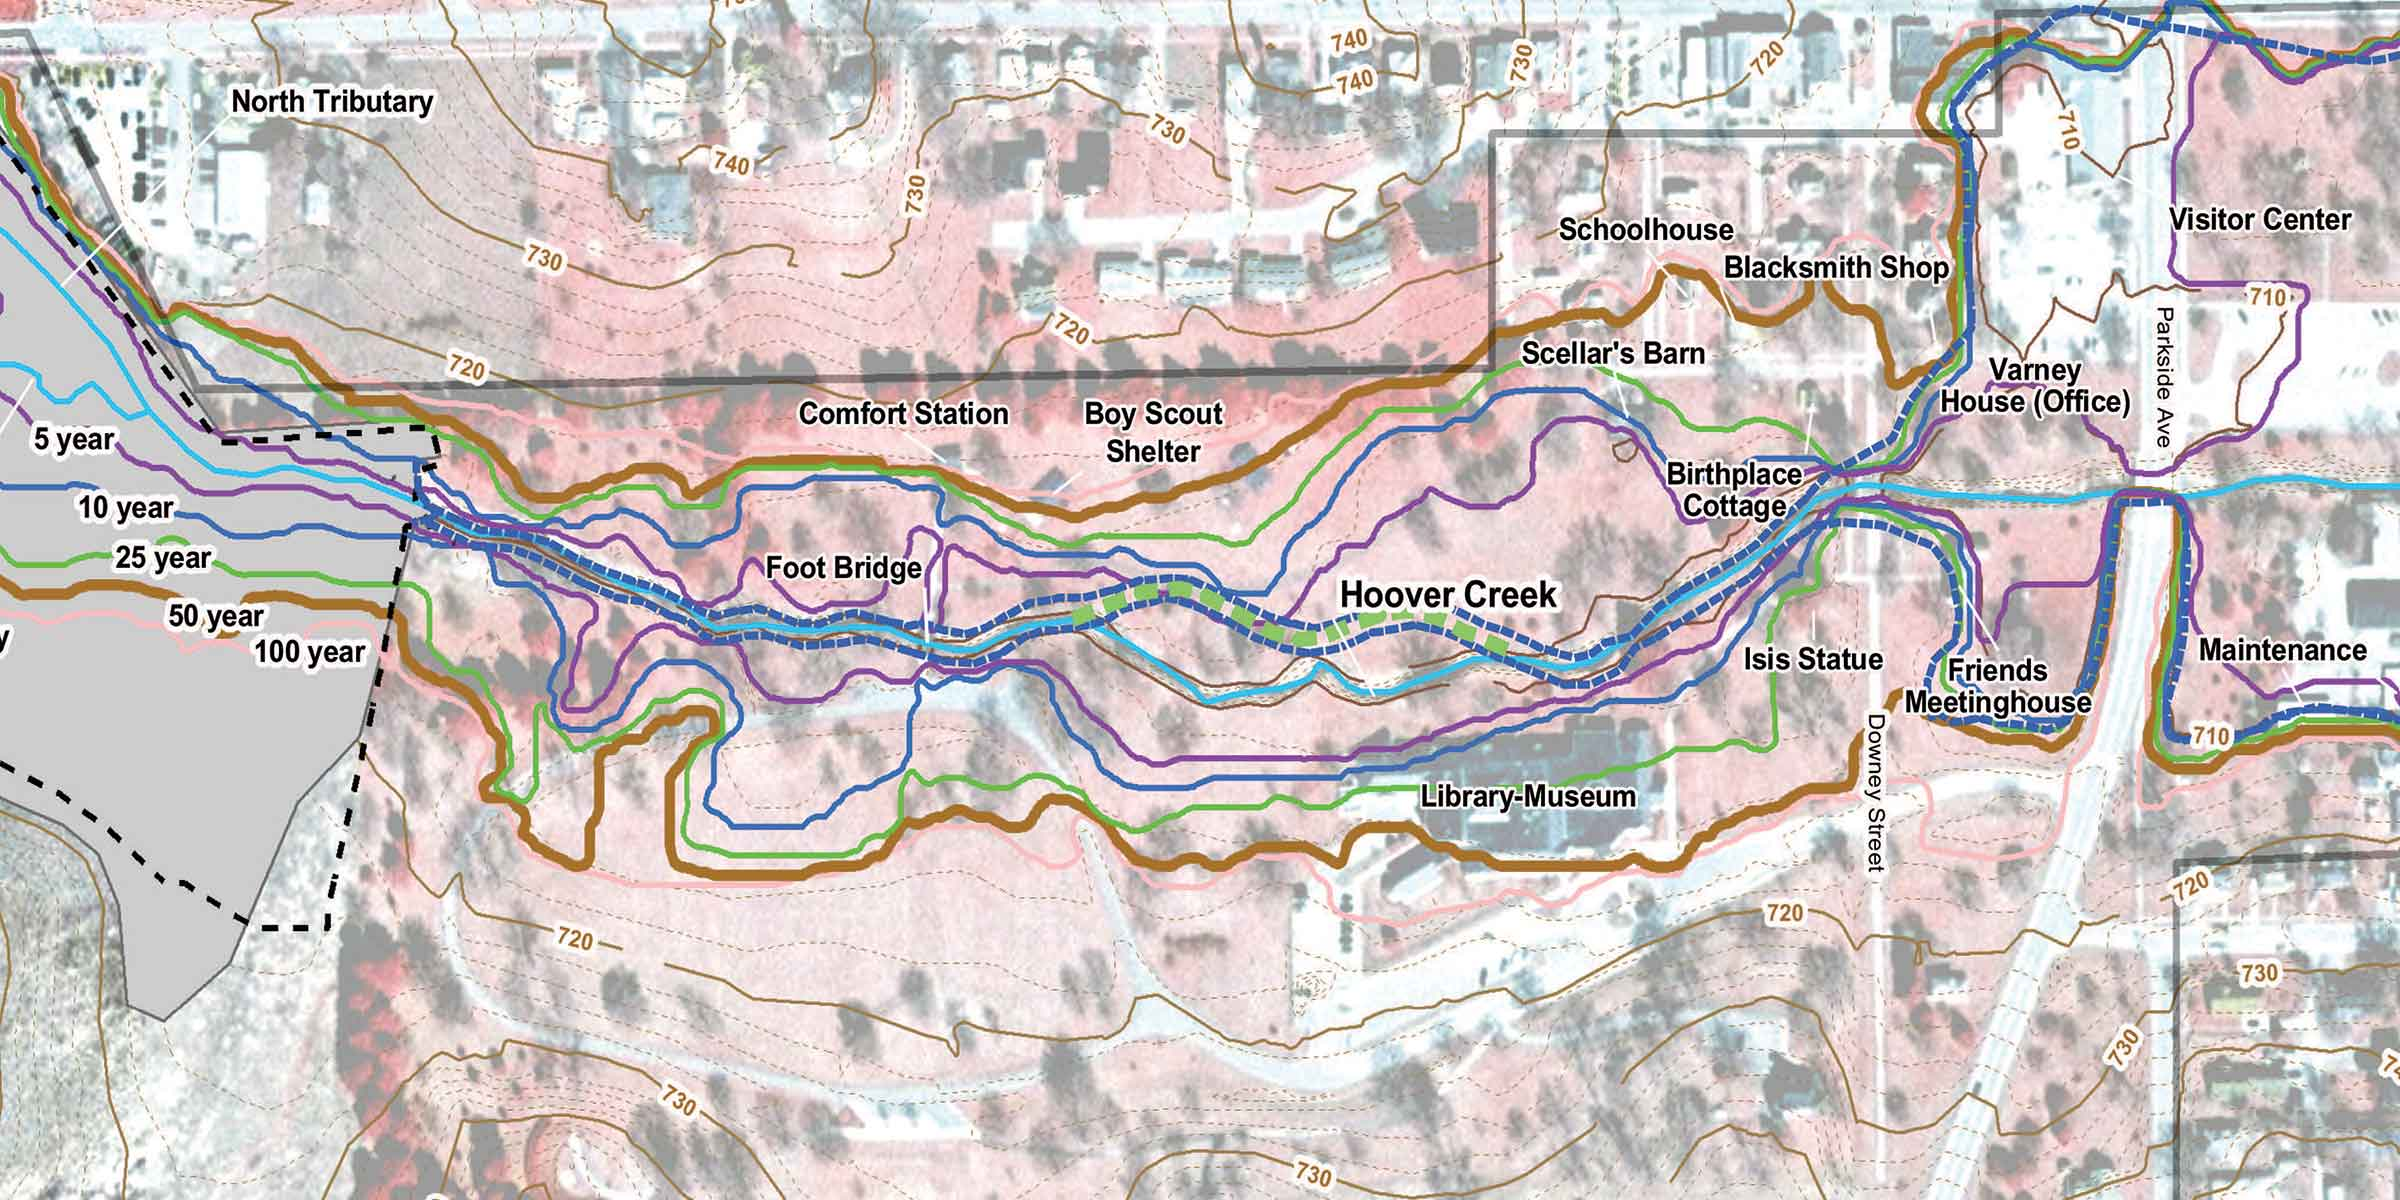 Hoover Creek Watershed Planning US National Park Service - Colorful map of watersheds in us